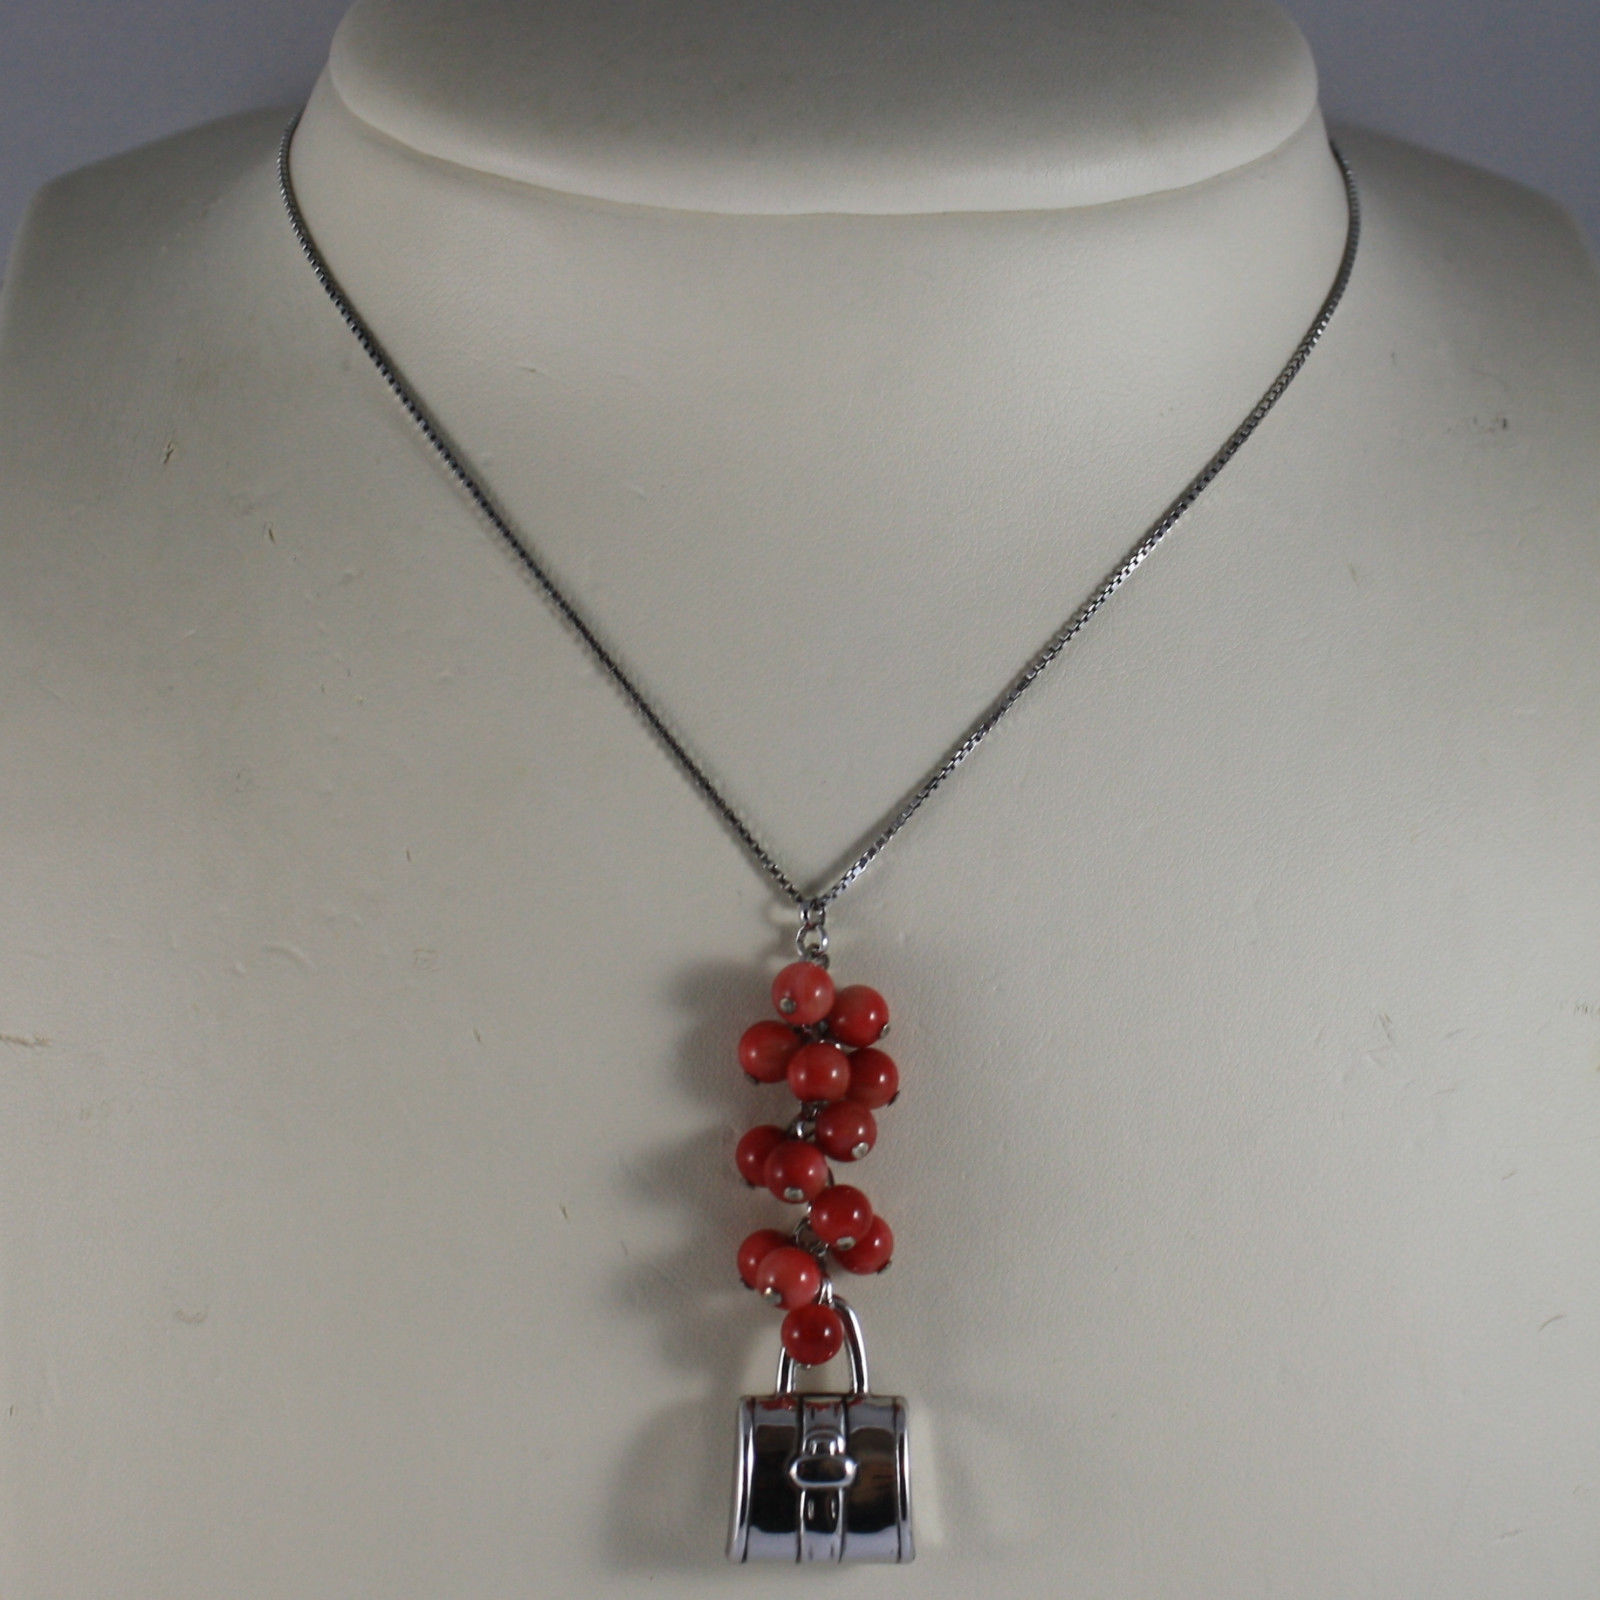 .925 RHODIUM SILVER NECKLACE WITH RED CORAL BAMBOO AND BAG CHARM